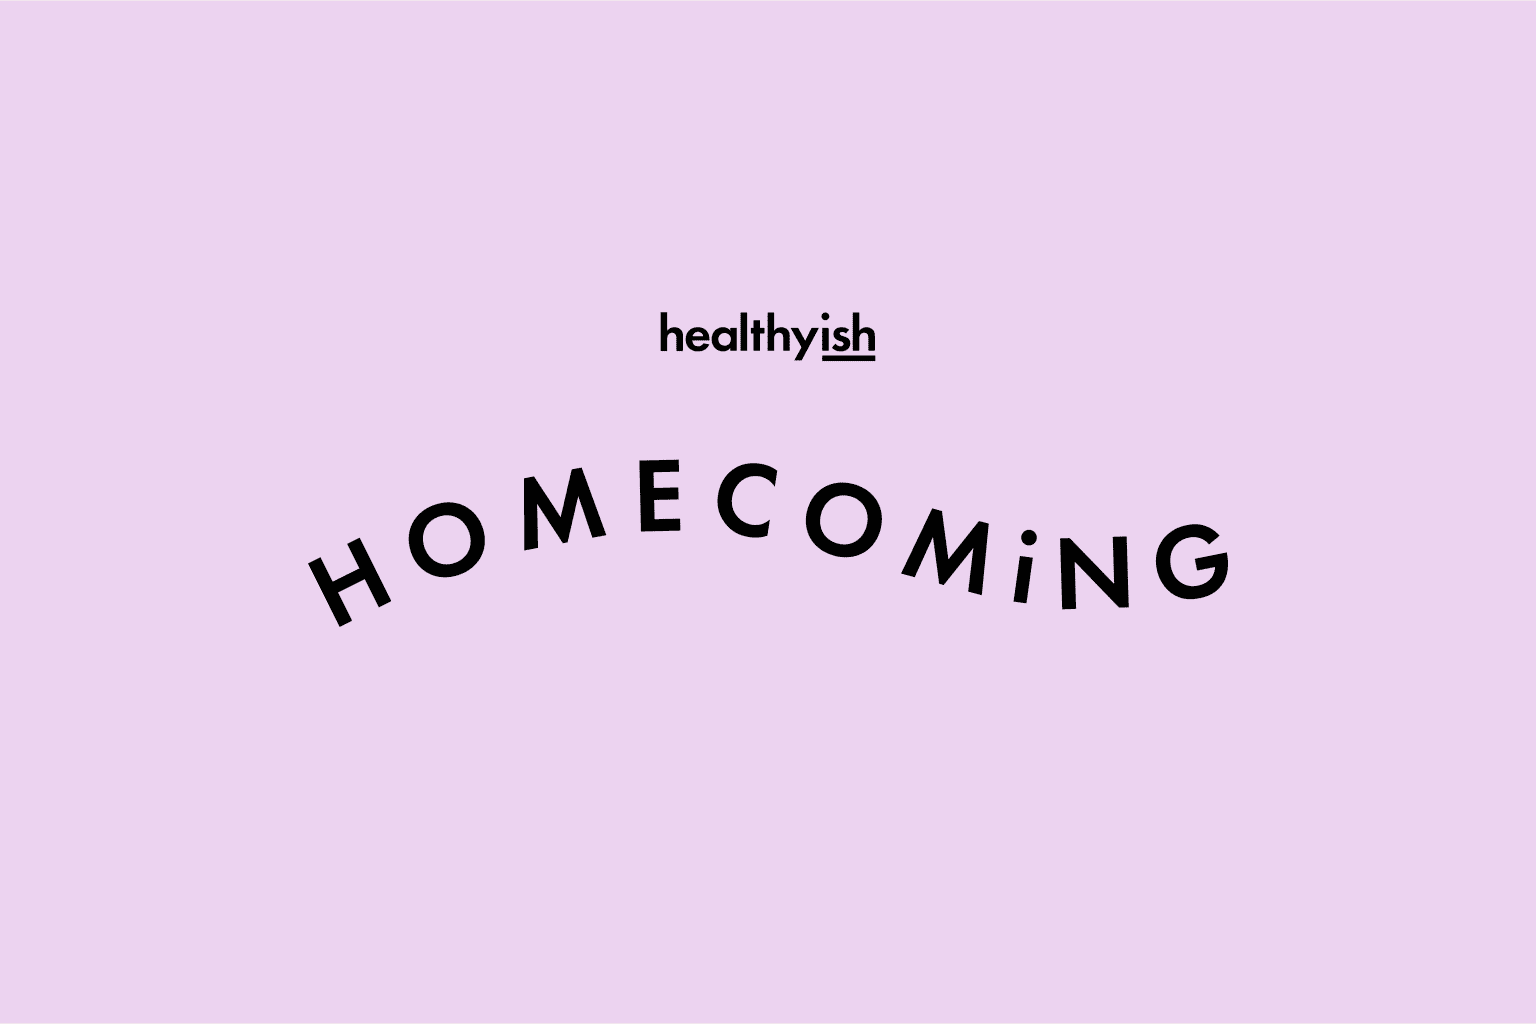 Healthyish Homecoming Event